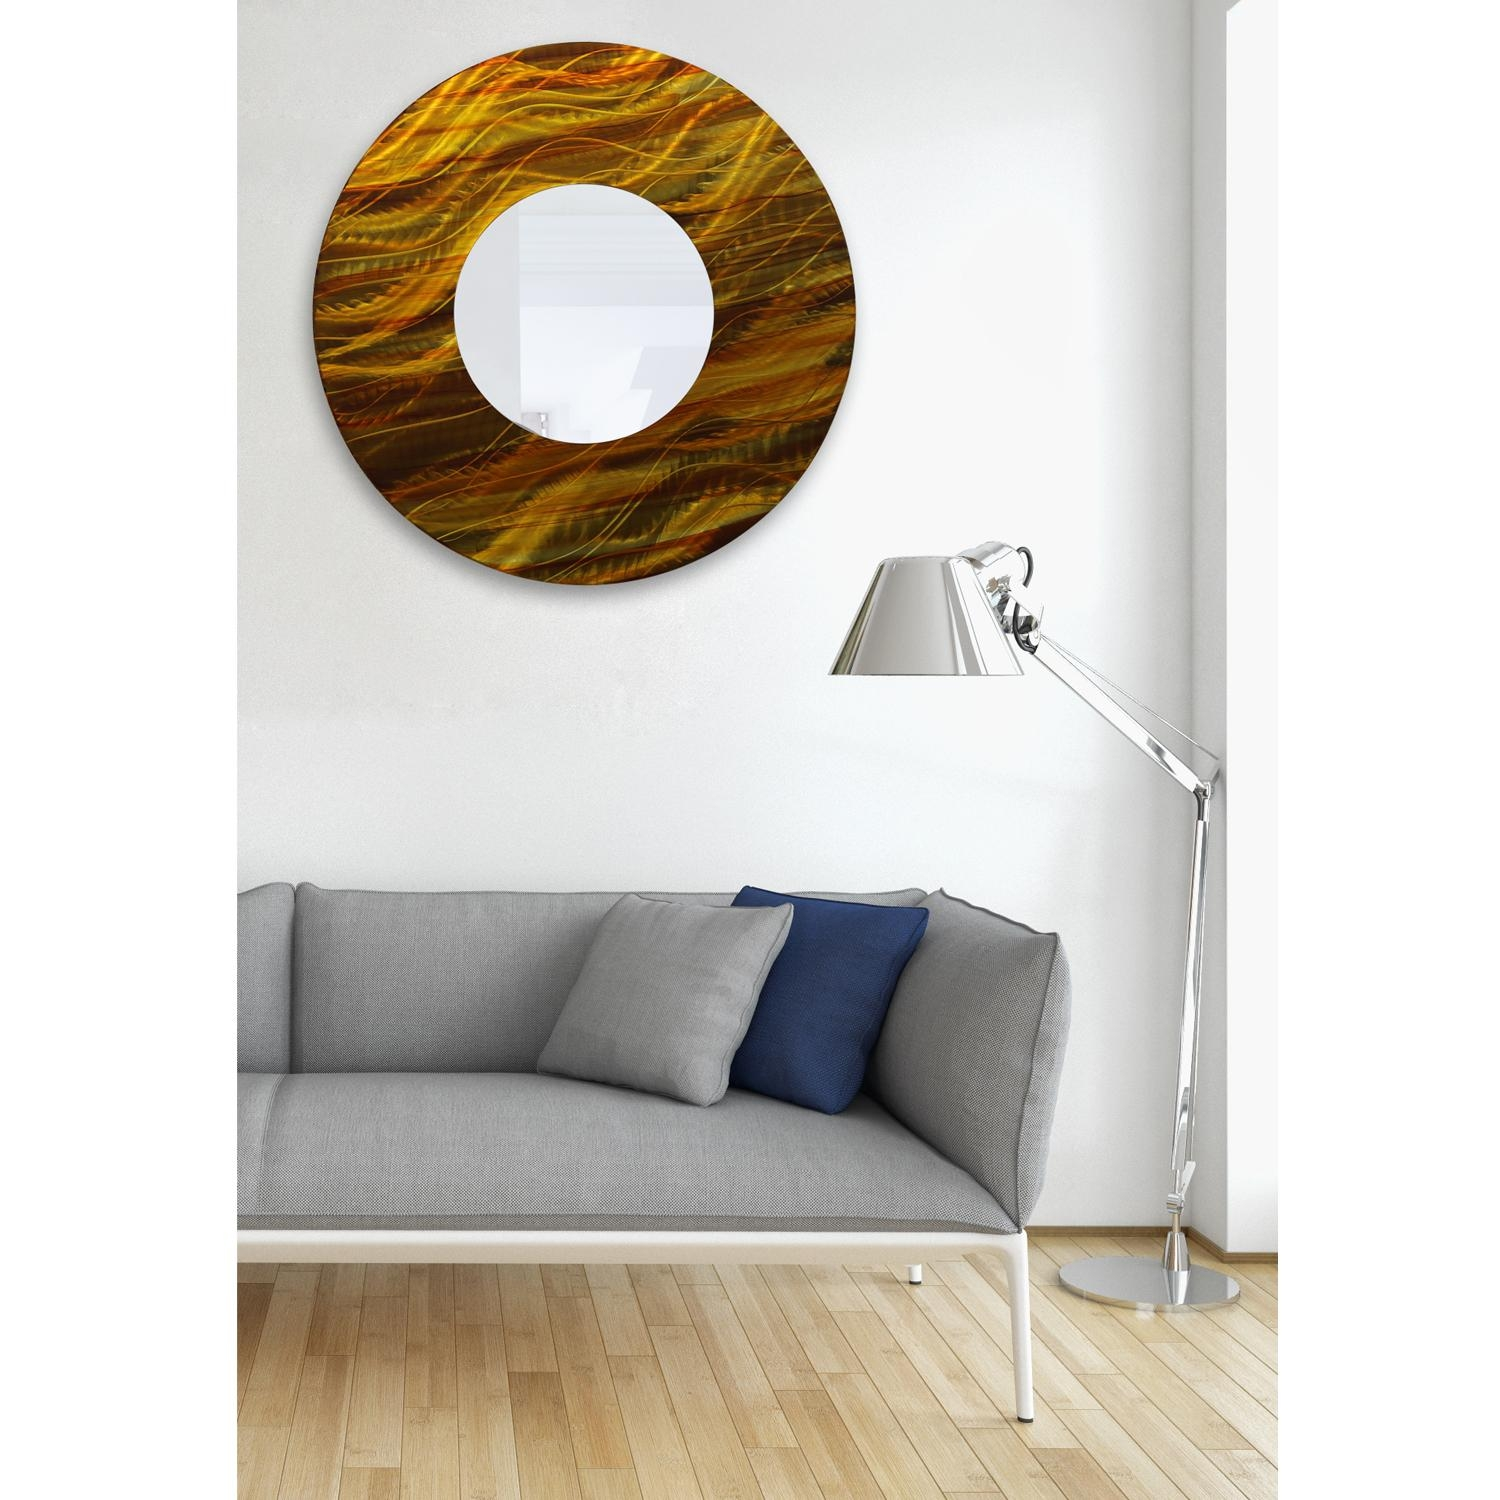 Mirror 115 – Gold And Amber Abstract Metal Wall Art Mirror Accent In Abstract Mirror Wall Art (Image 11 of 20)